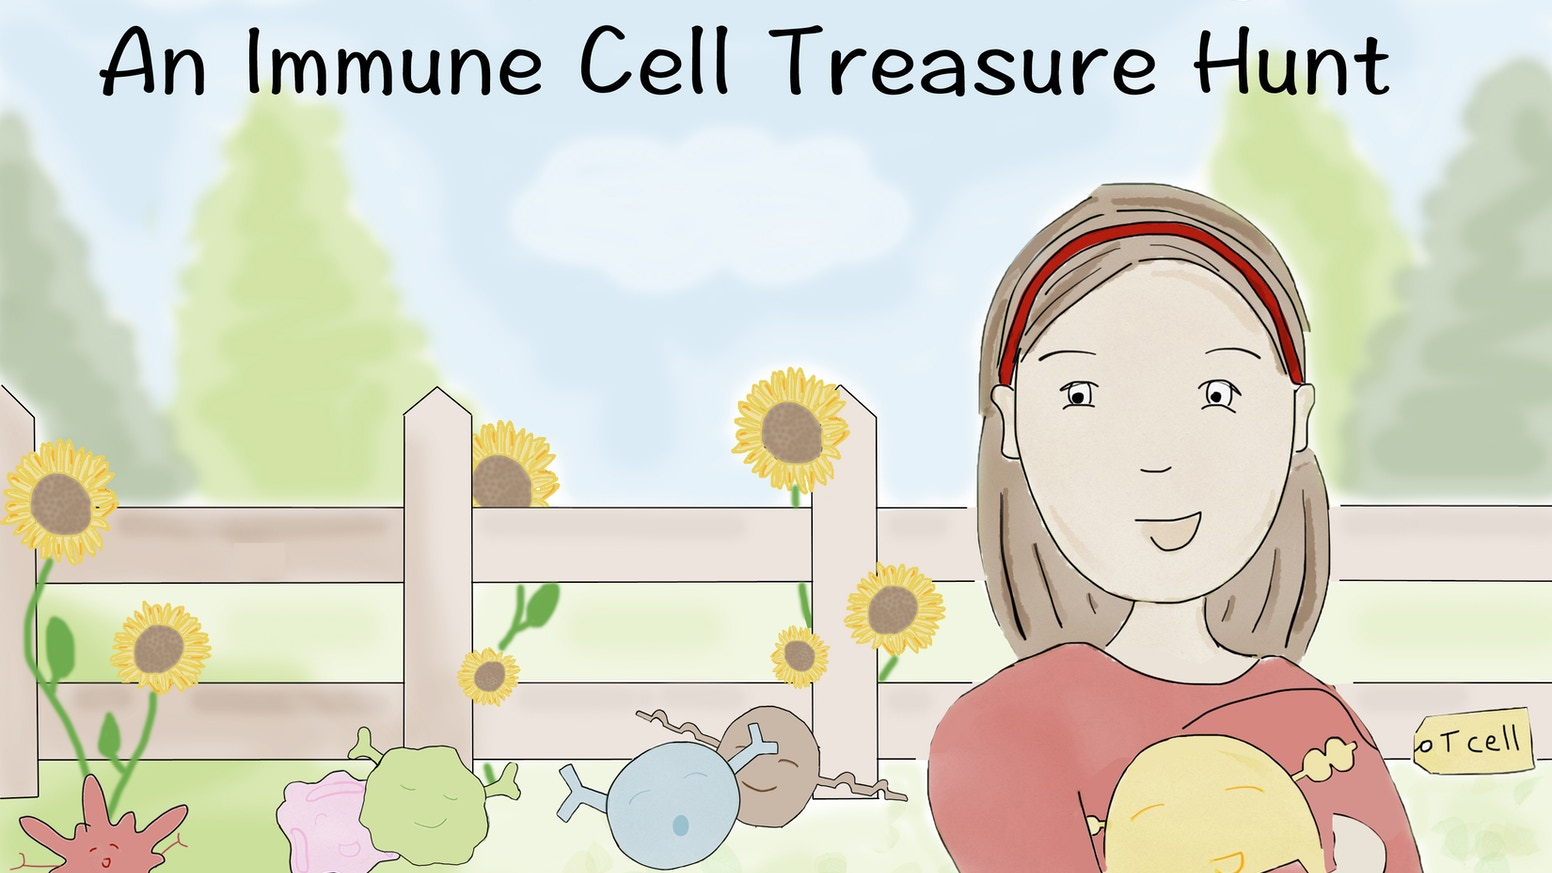 A children's book about our immune cell superheroes! Promote girls in science and inspire scientific curiosity in the next generation.